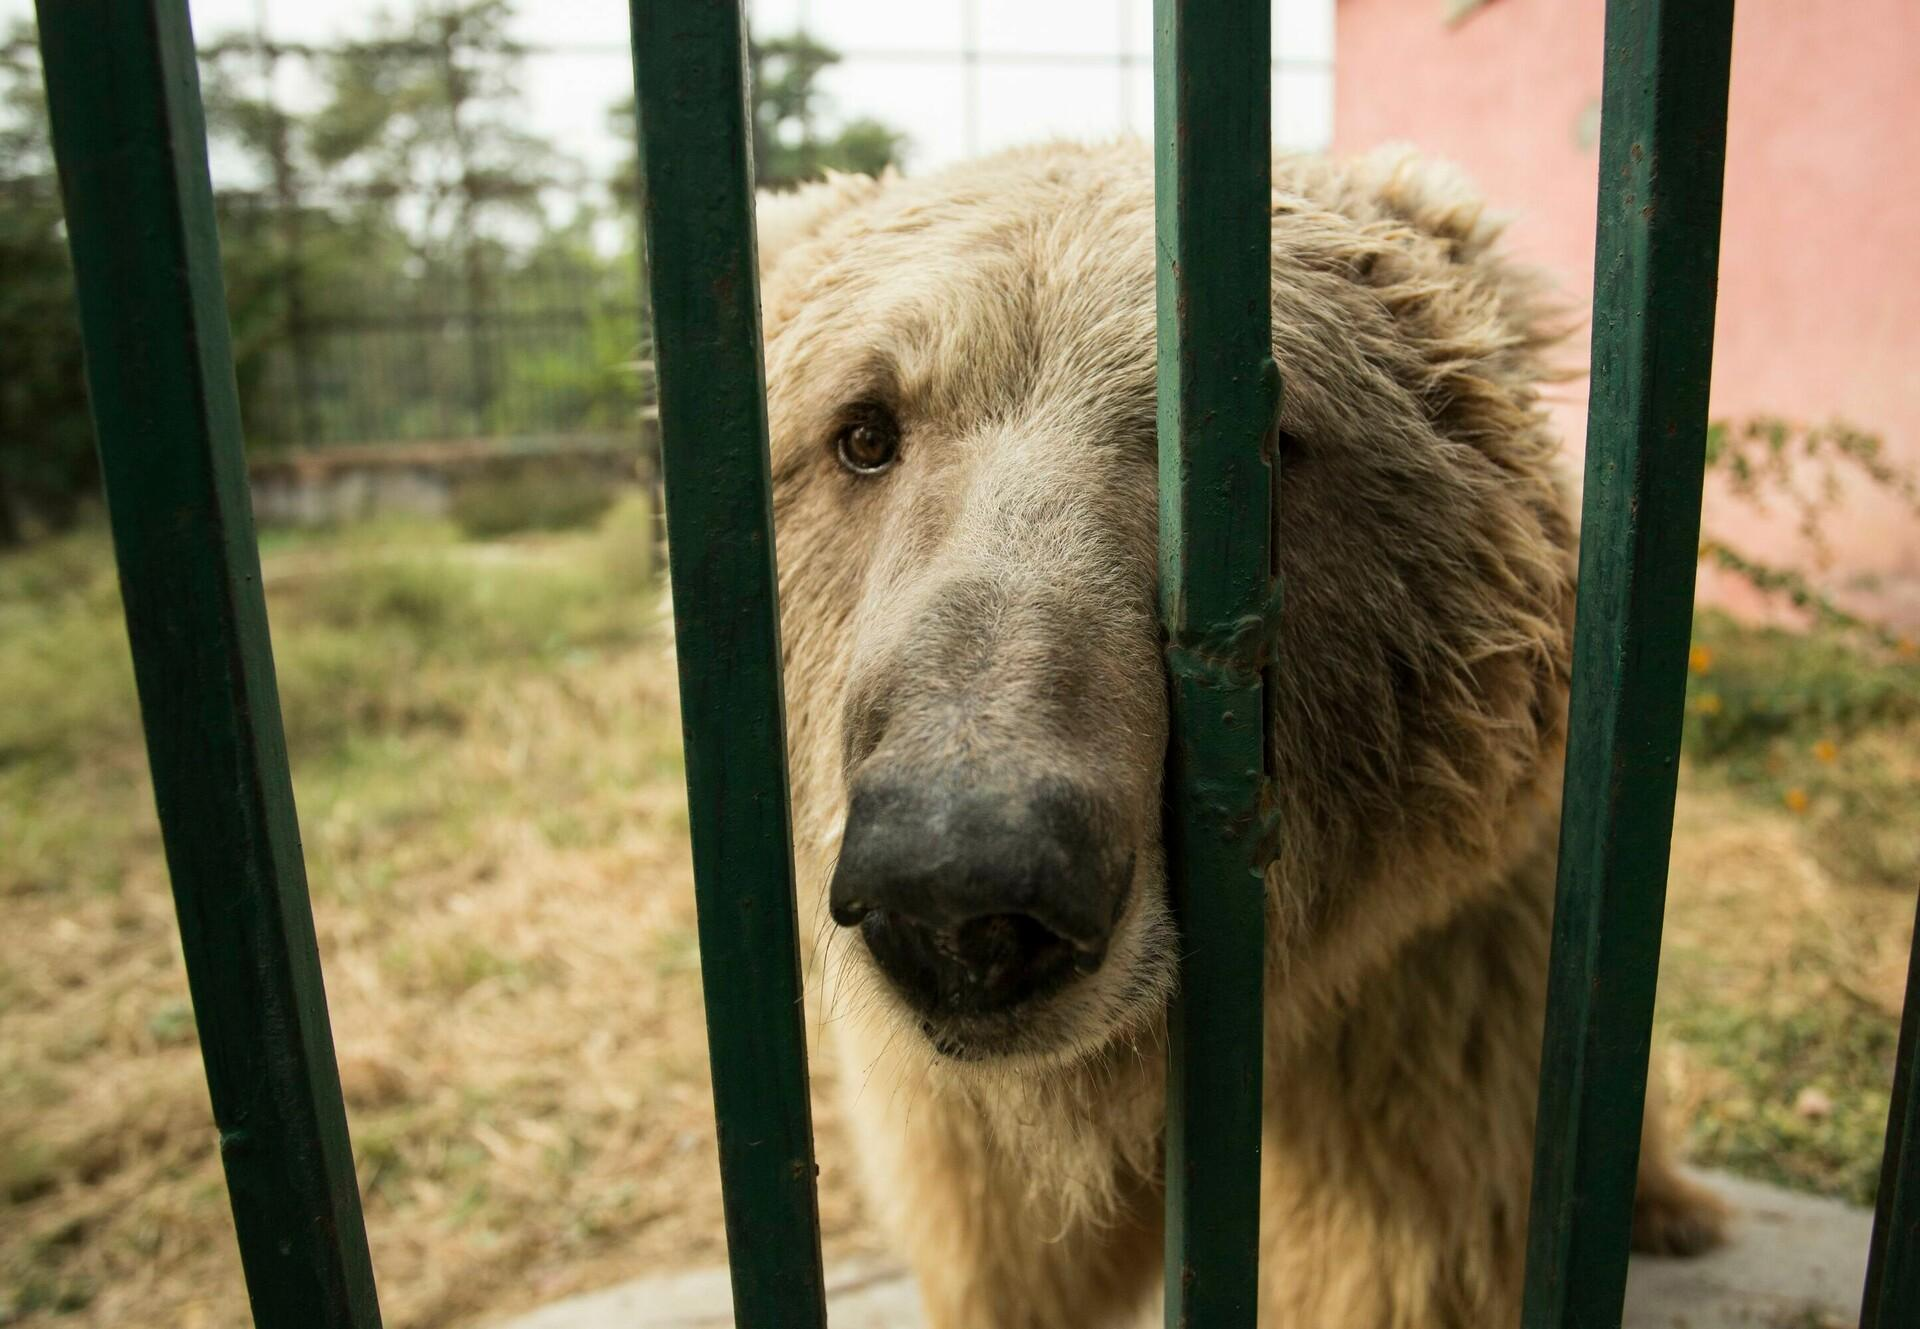 Bear caged in a horrible zoo